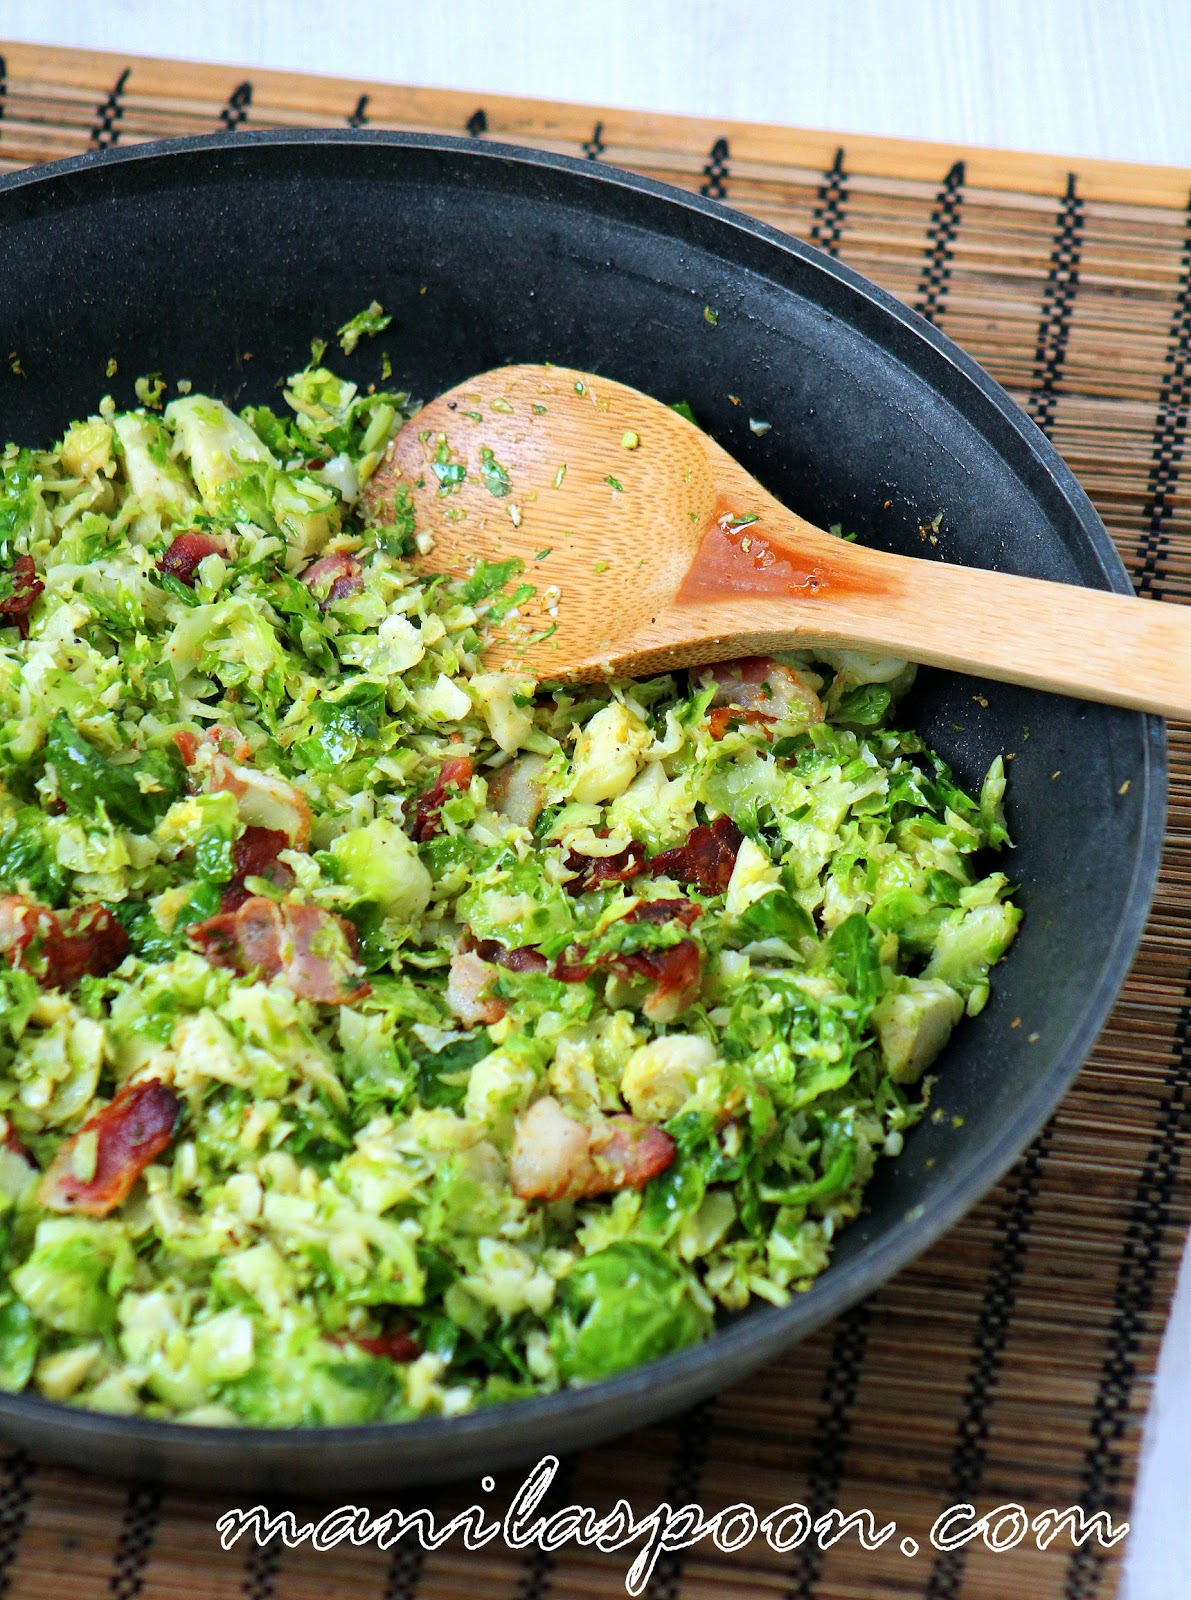 Flavored with bacon and garlic these sauteed brussels sprouts will ...